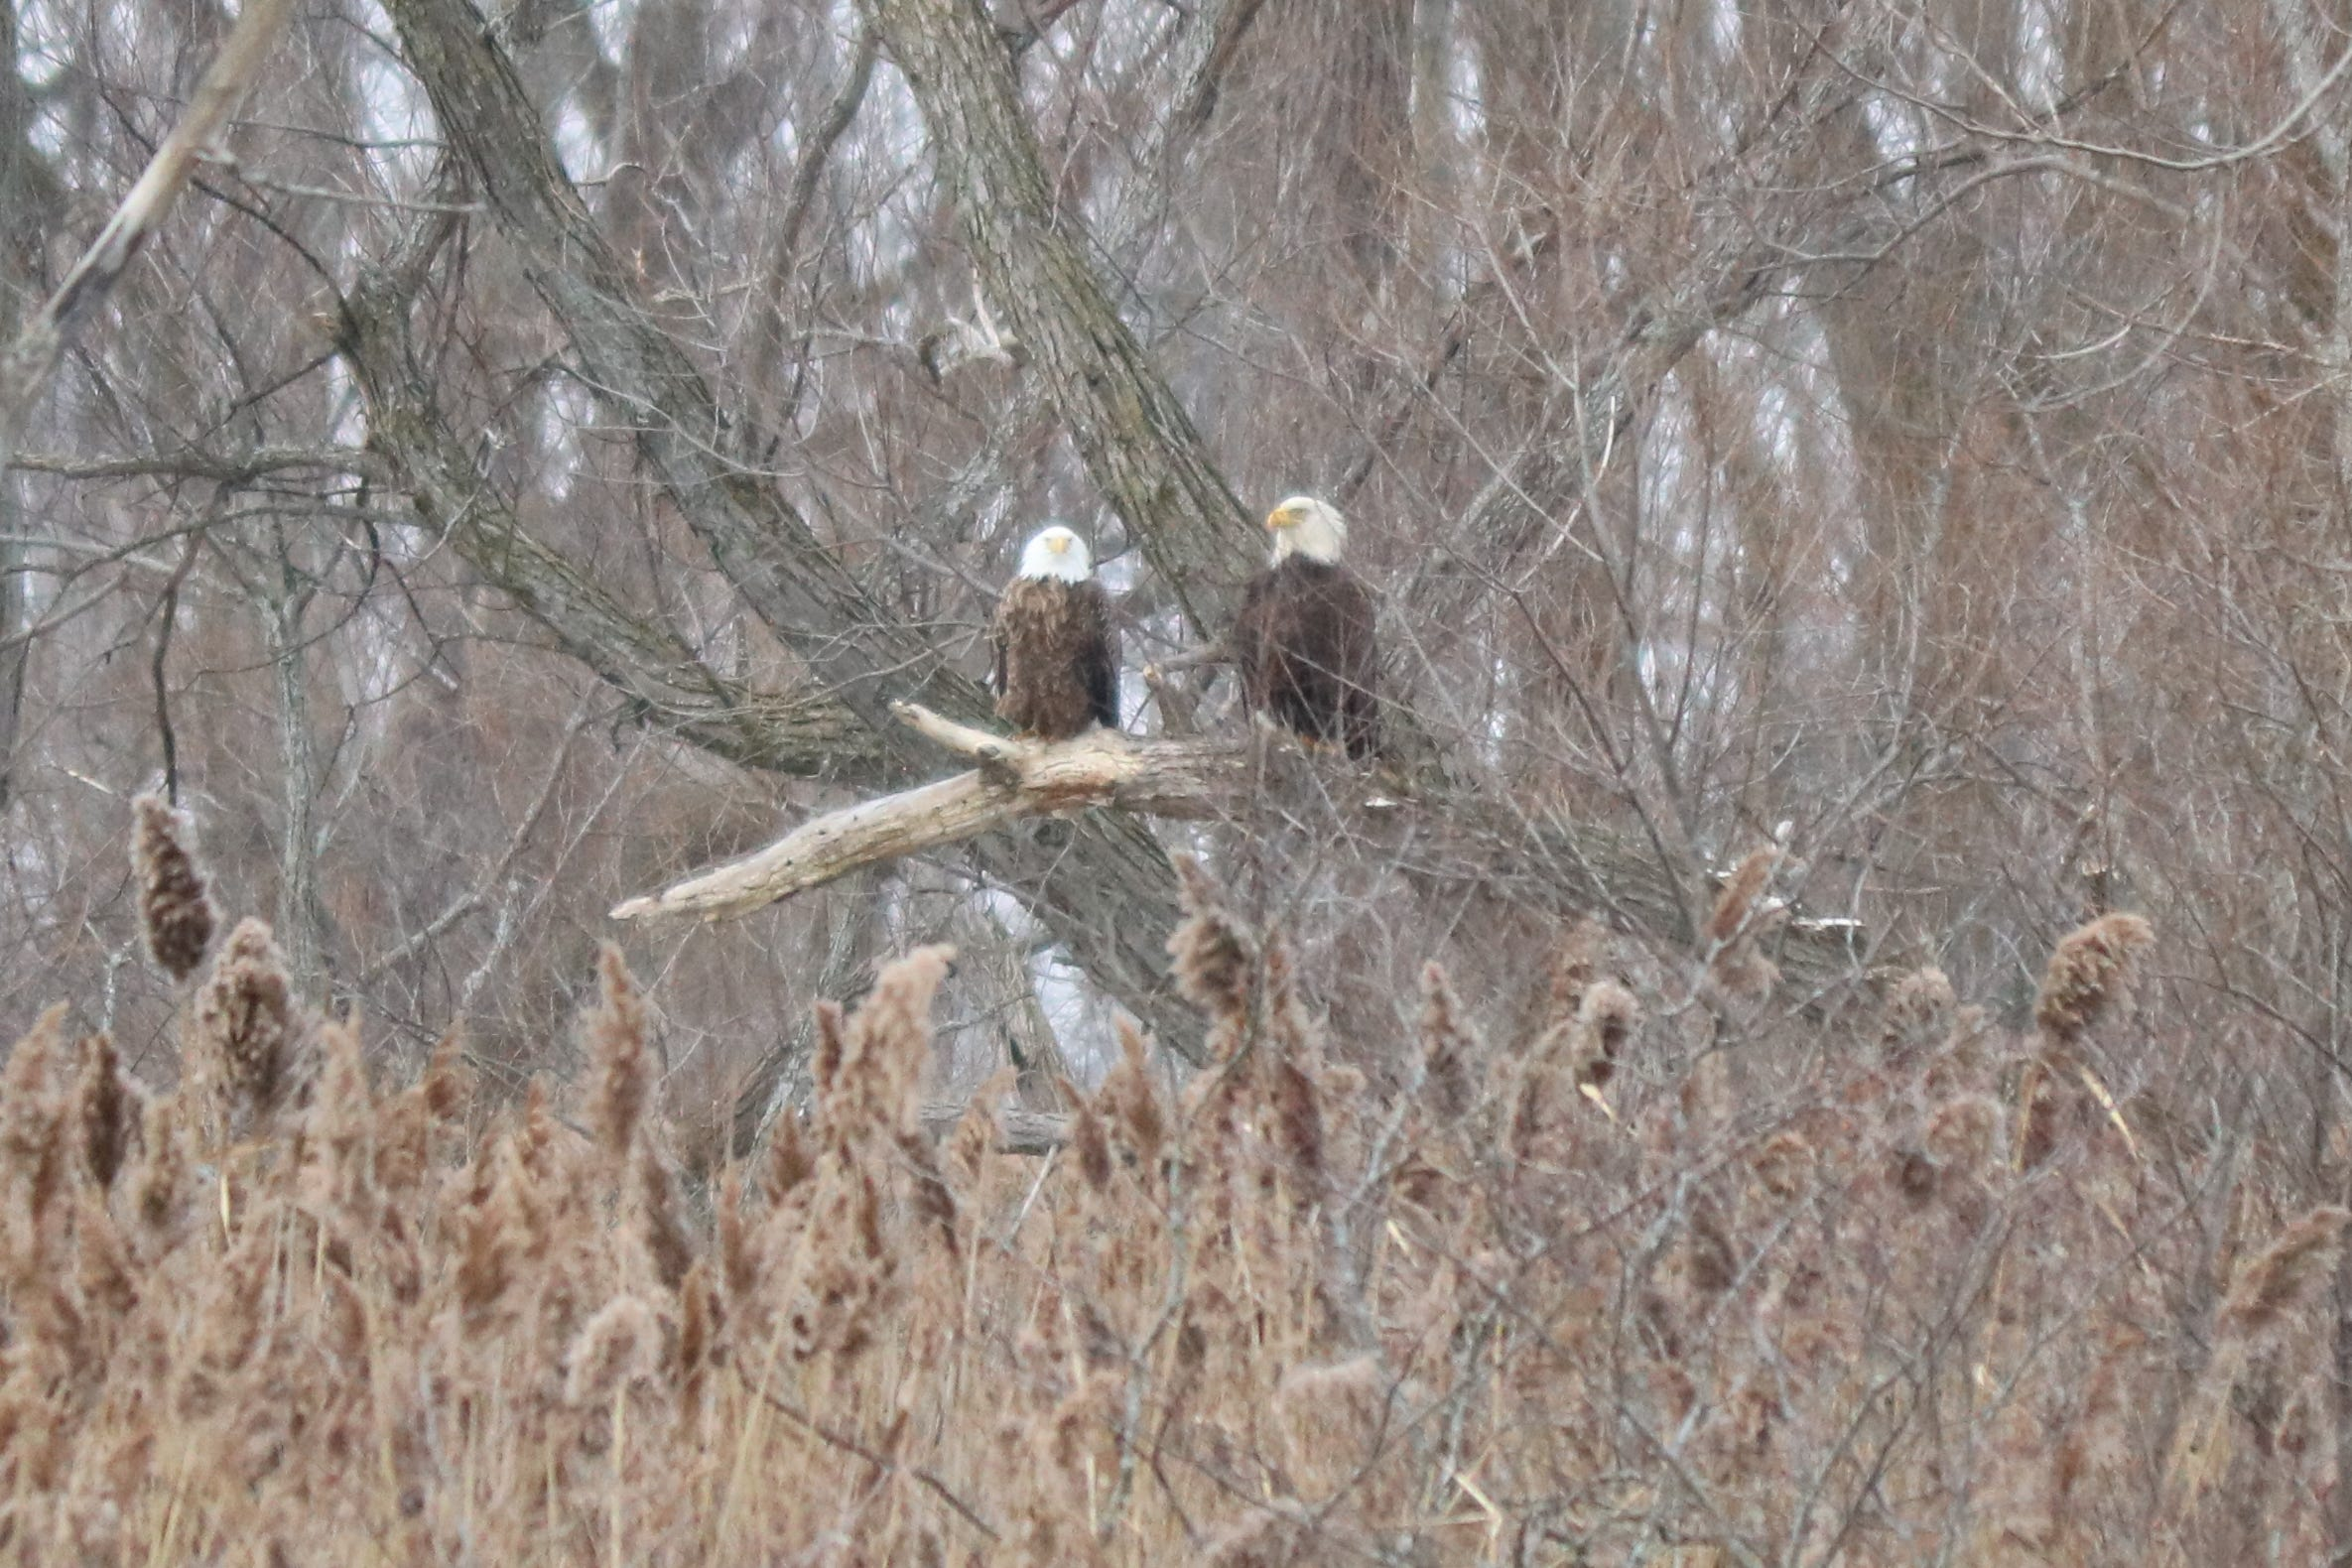 A pair of bald eagles perch on a tree limb on a cold, windy morning at the Ottawa National Wildlife Refuge.